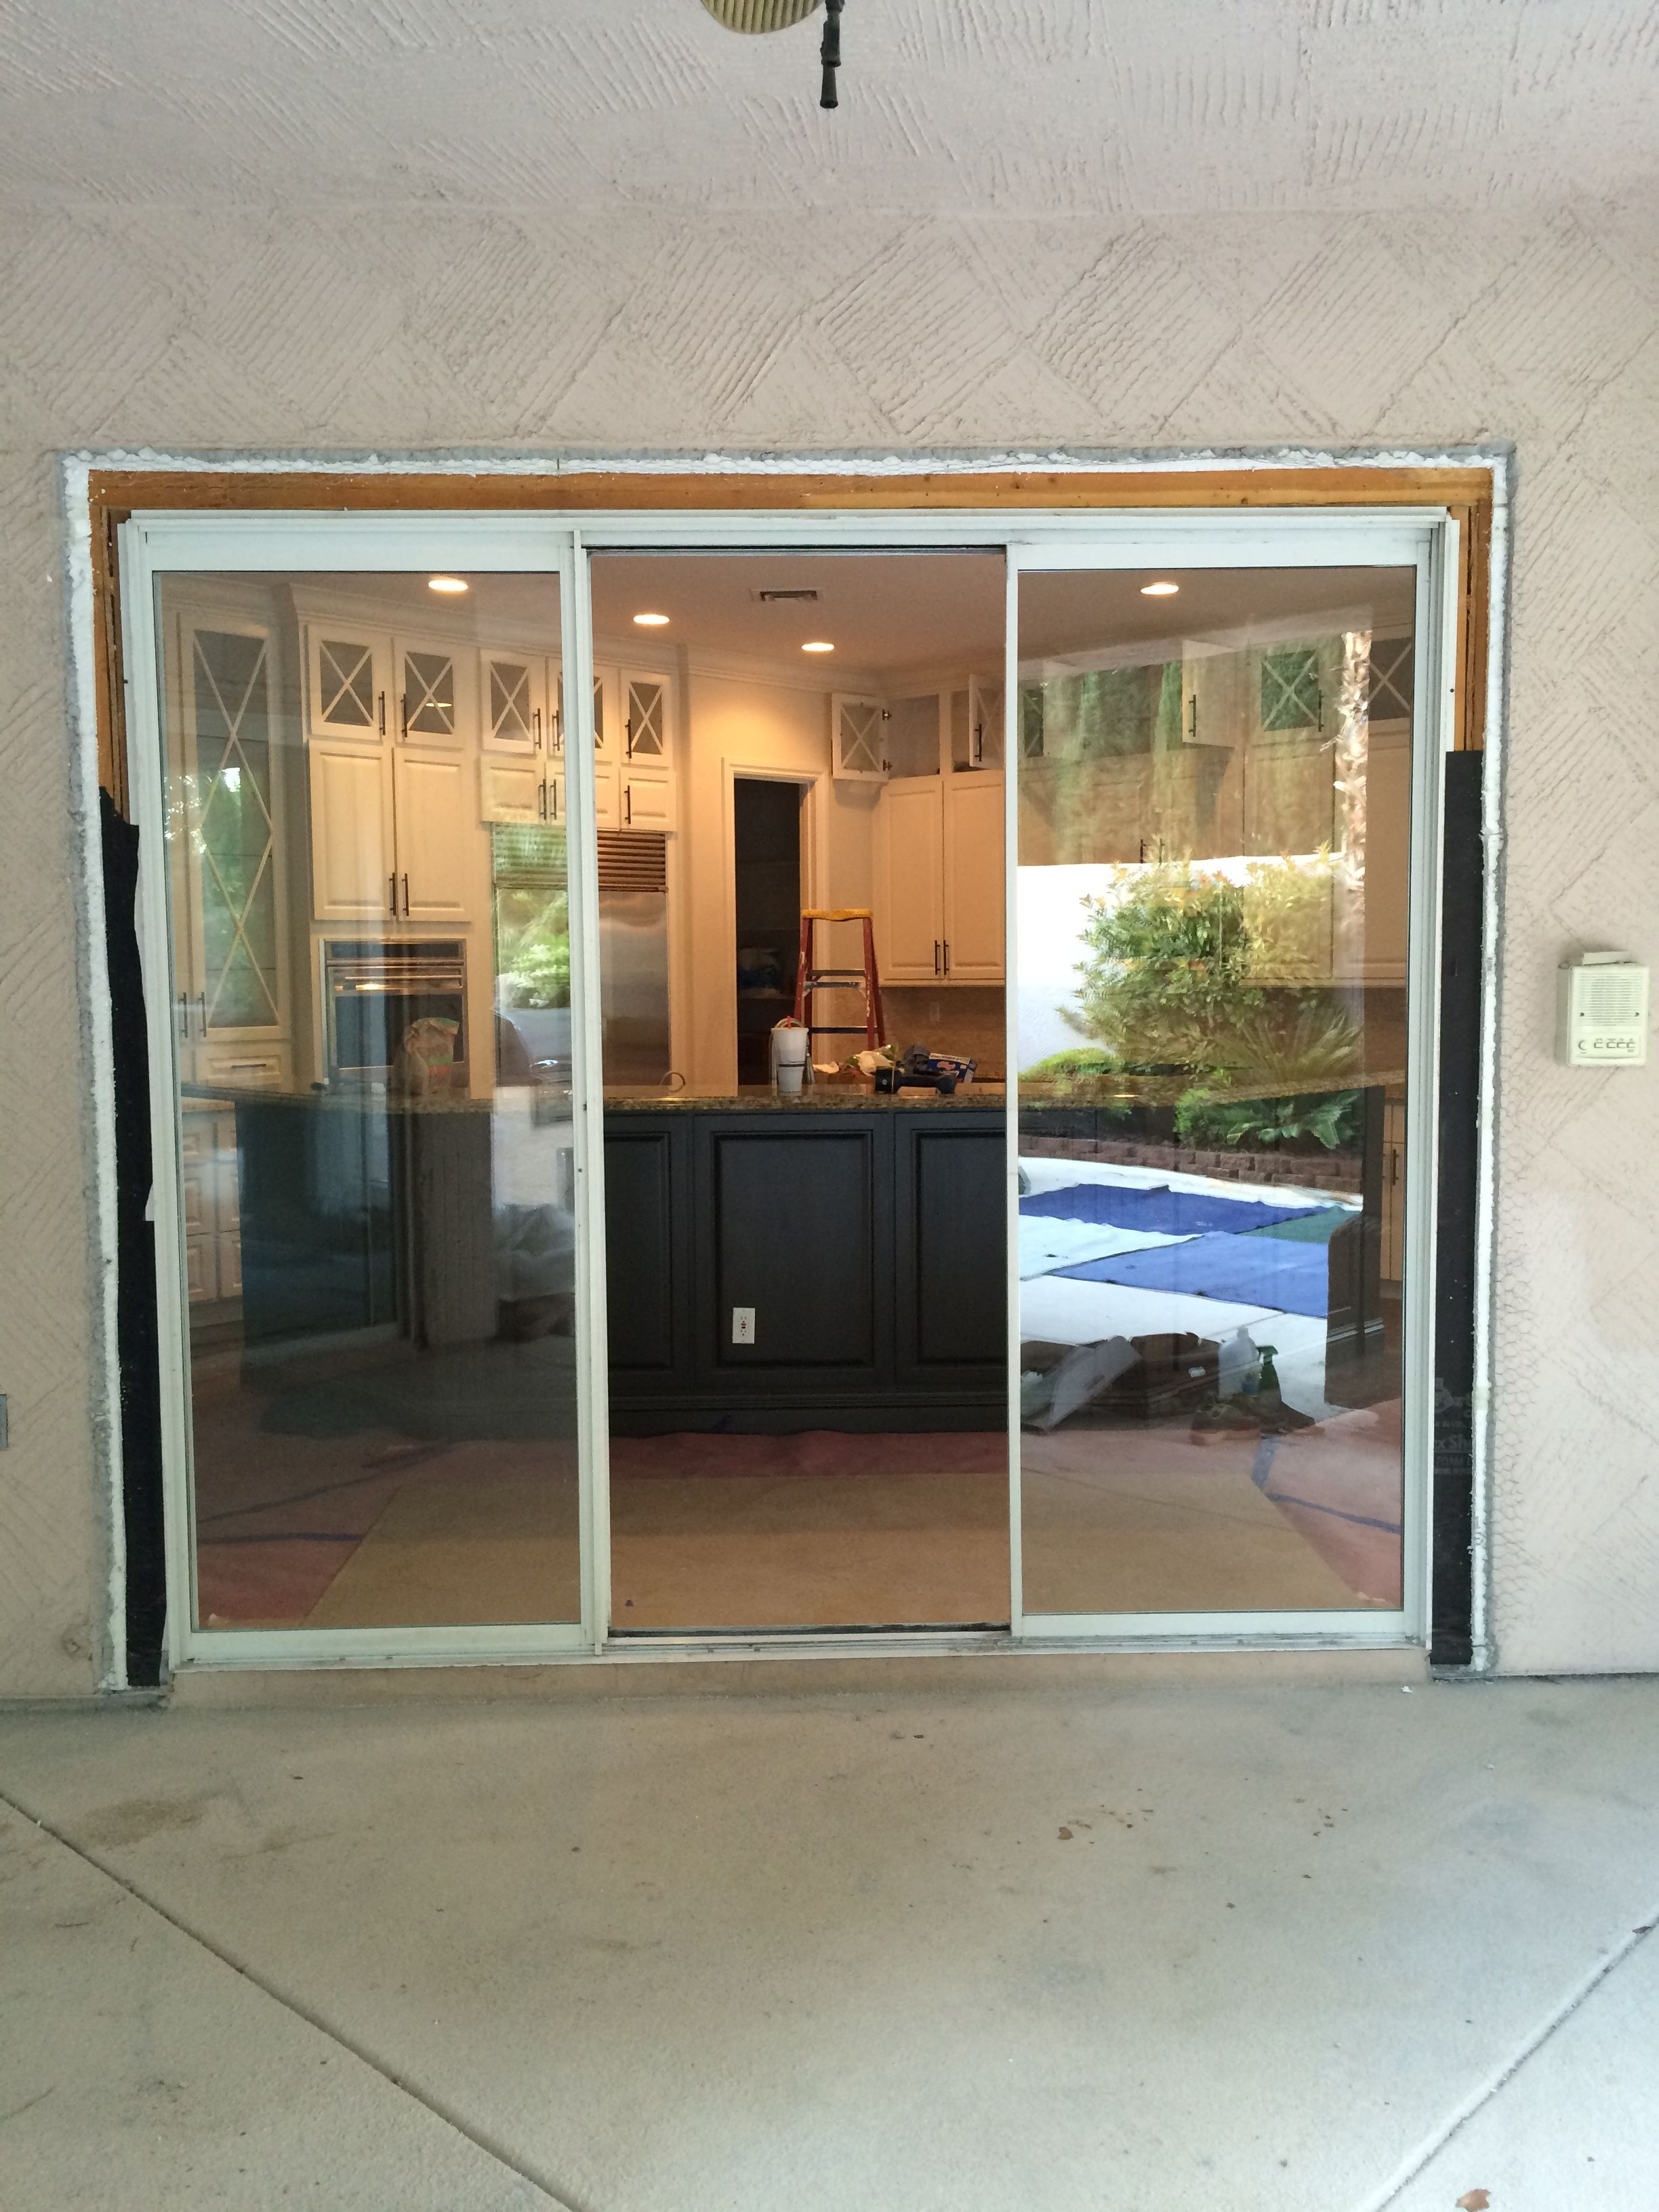 Three Openings 9 8 And 5 Foot Wide 8 Foot Tall We Replaced These Sliding Glass Doors With La Cantina Fold Out Sliding Glass Door Closet Decor Closet Doors